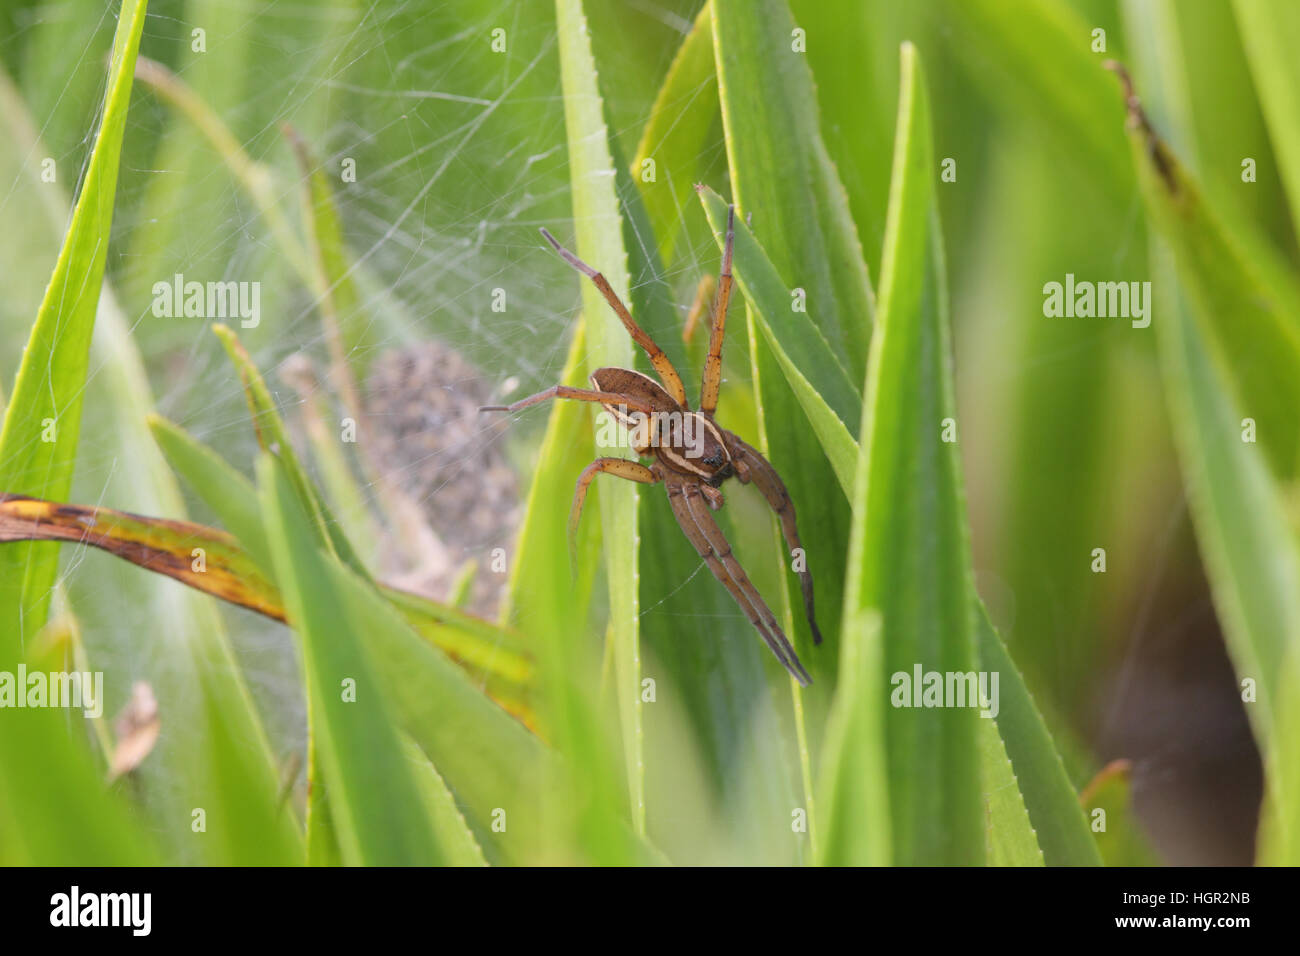 Female Fen Raft Spider (Dolomedes plantarius), from reintroduction scheme in East Anglia, guarding a web with spiderlings - Stock Image